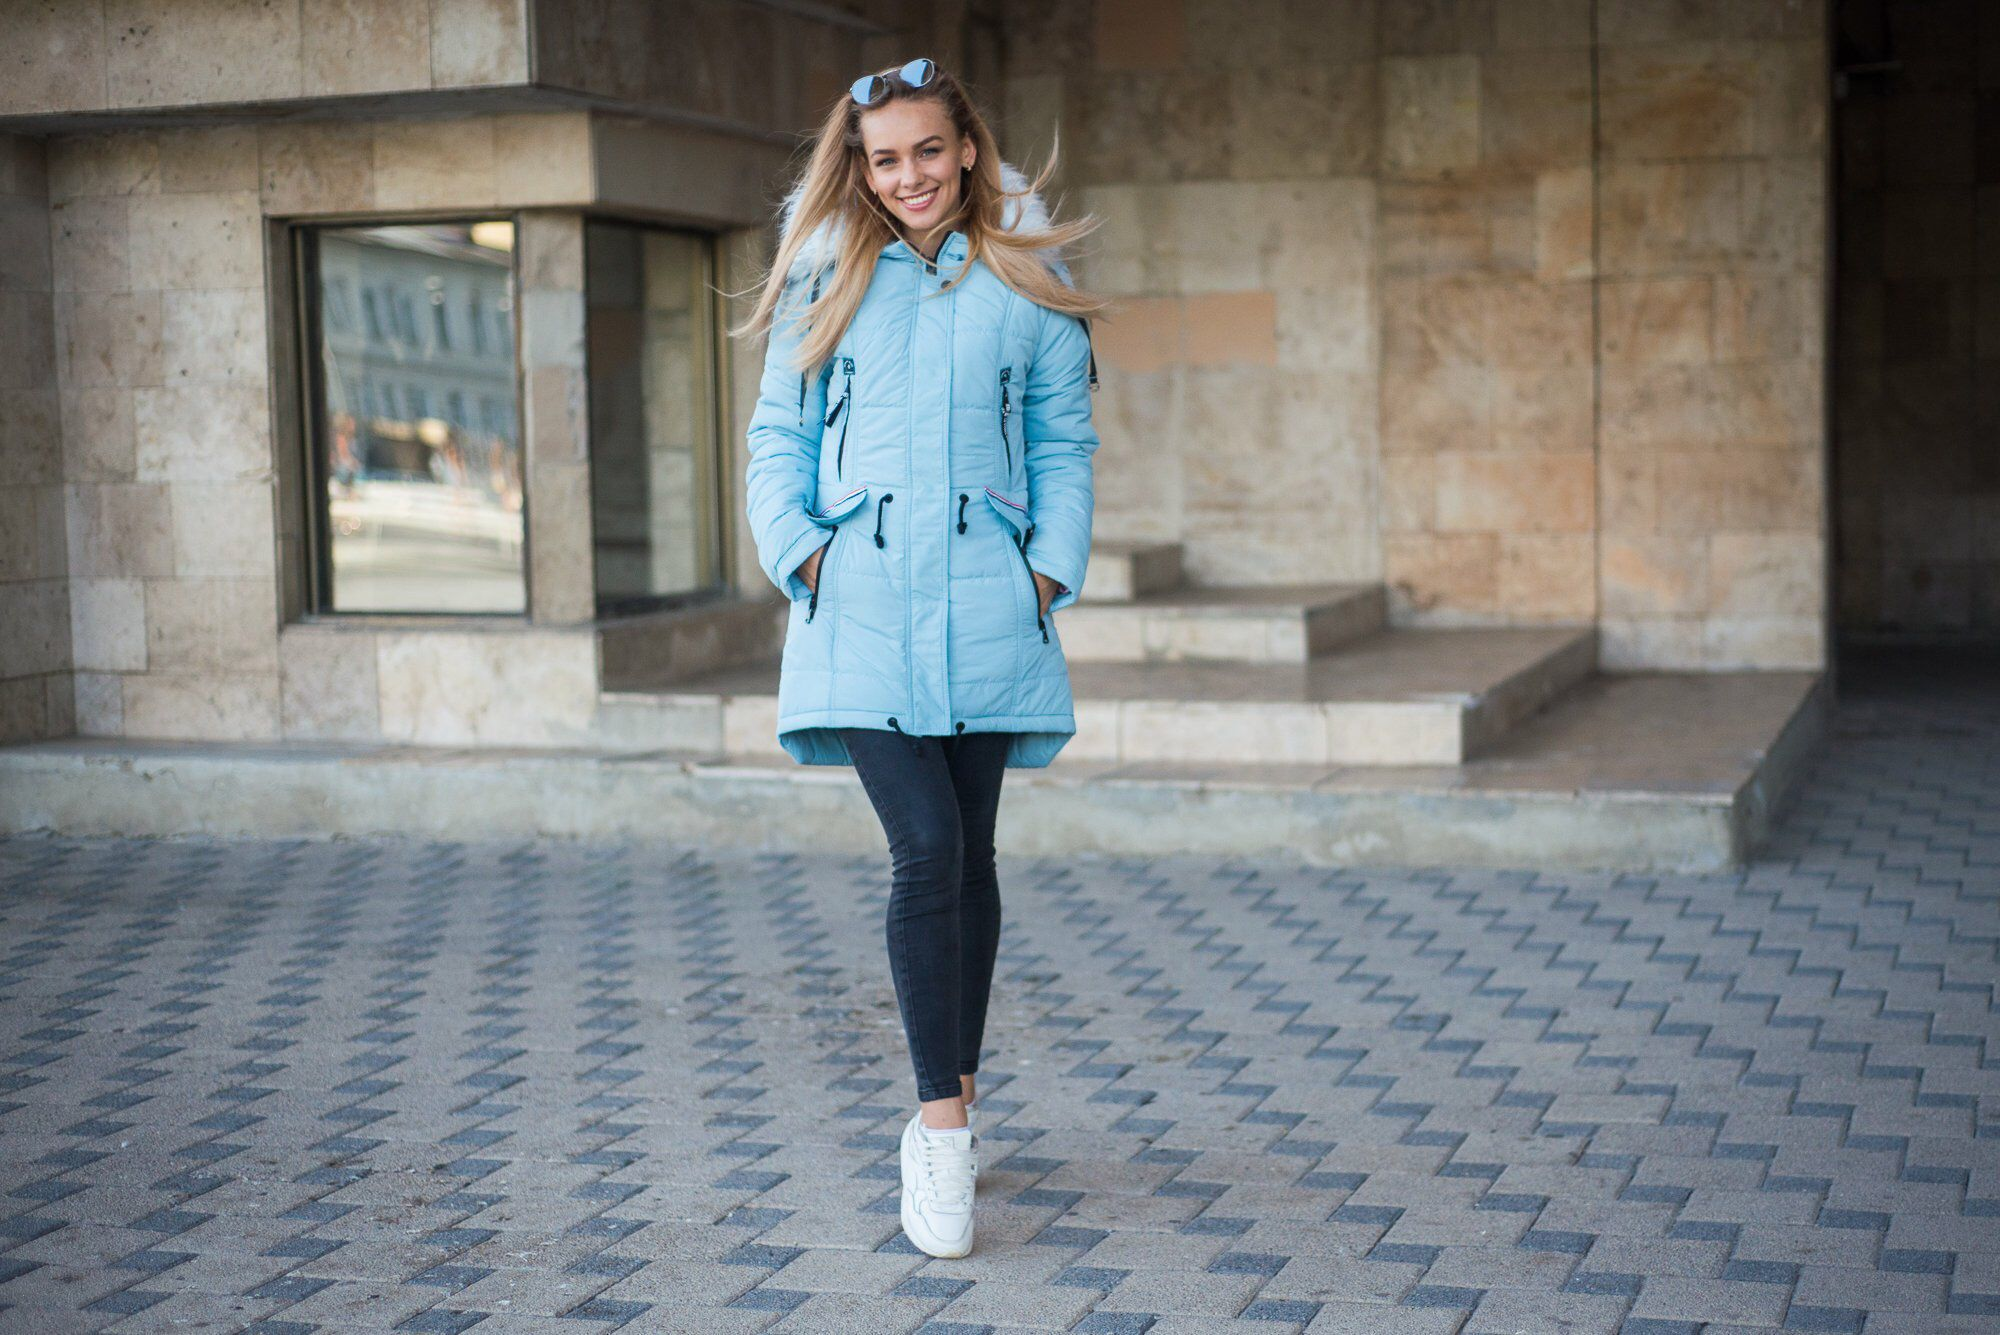 Sky Blue Puffer Parka Plus Size Long Winter Warm Jacket Faux Fur Hooded Fluffed Down Coat Casual Wear Grunge Aesthetic Clothing Blue Puffer Clothes Jackets [ 1335 x 2000 Pixel ]